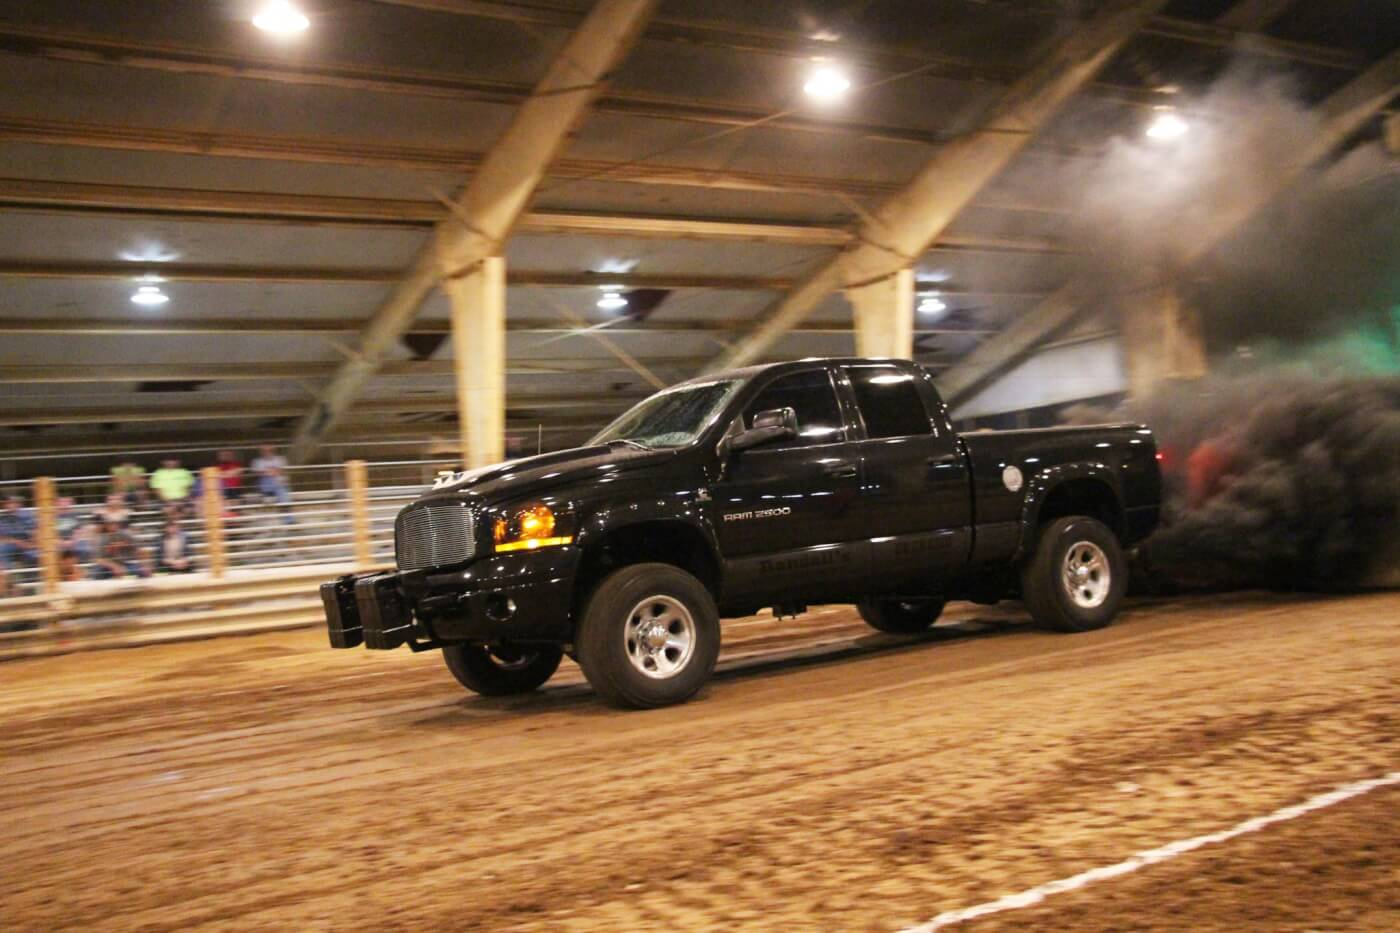 With some serious mph built up by mid-track, Brian Randall led the field in the Hot Street class with a 344-foot pull. His '06 Dodge sports three turbos, two 12mm CP3's, 250 percent over injectors, and is driven on the street. It's a textbook example of what the Hot Street class is all about: a class that provides high horsepower, street-legal, unlimited turbo trucks a category to compete in.